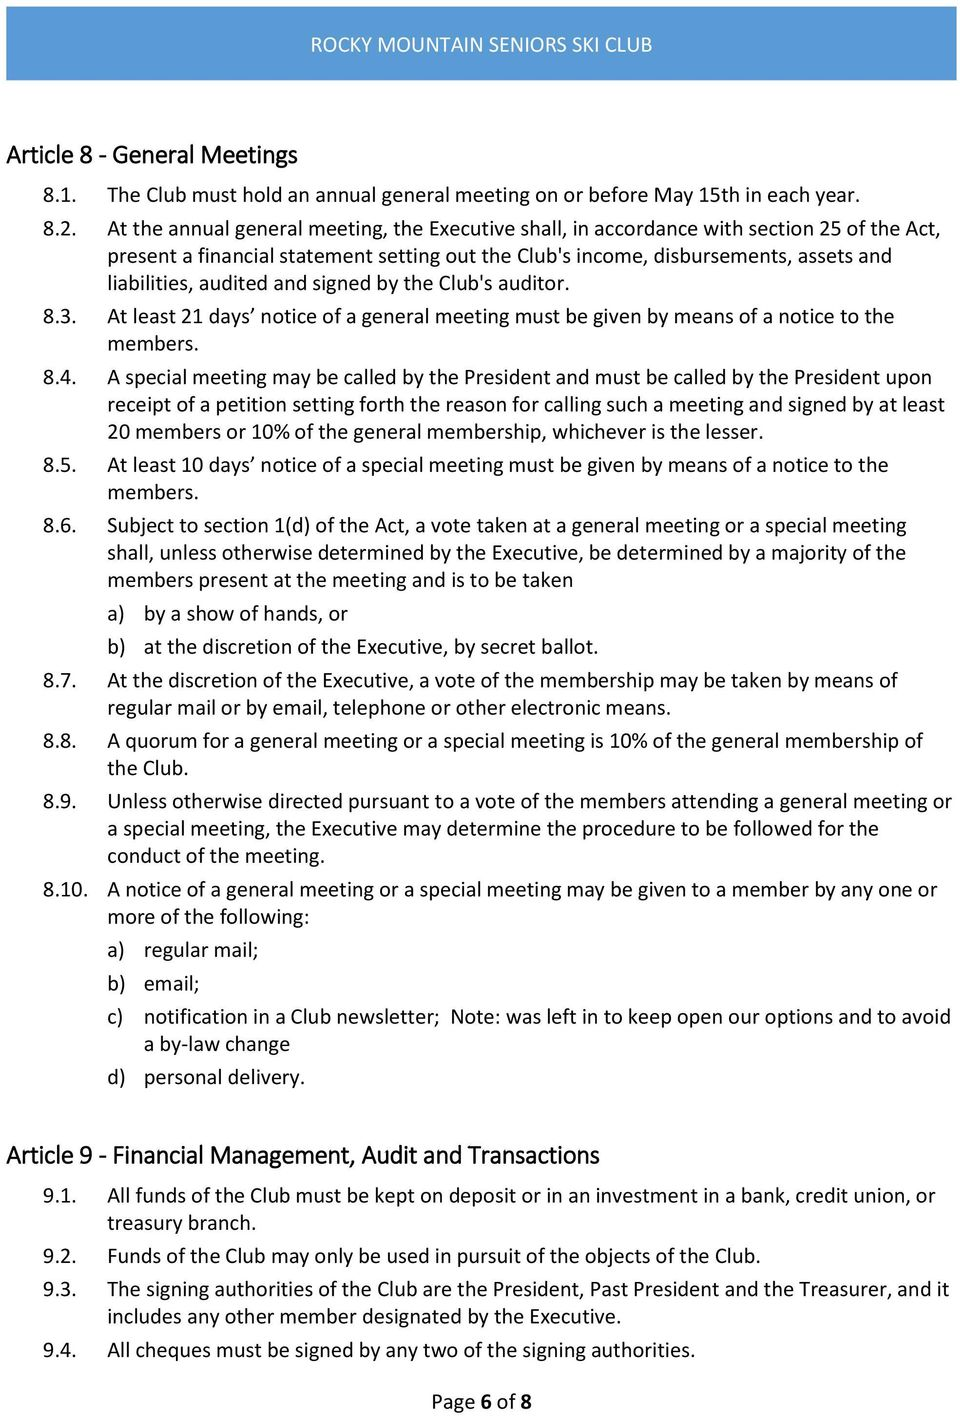 audited and signed by the Club's auditor. 8.3. At least 21 days notice of a general meeting must be given by means of a notice to the members. 8.4.